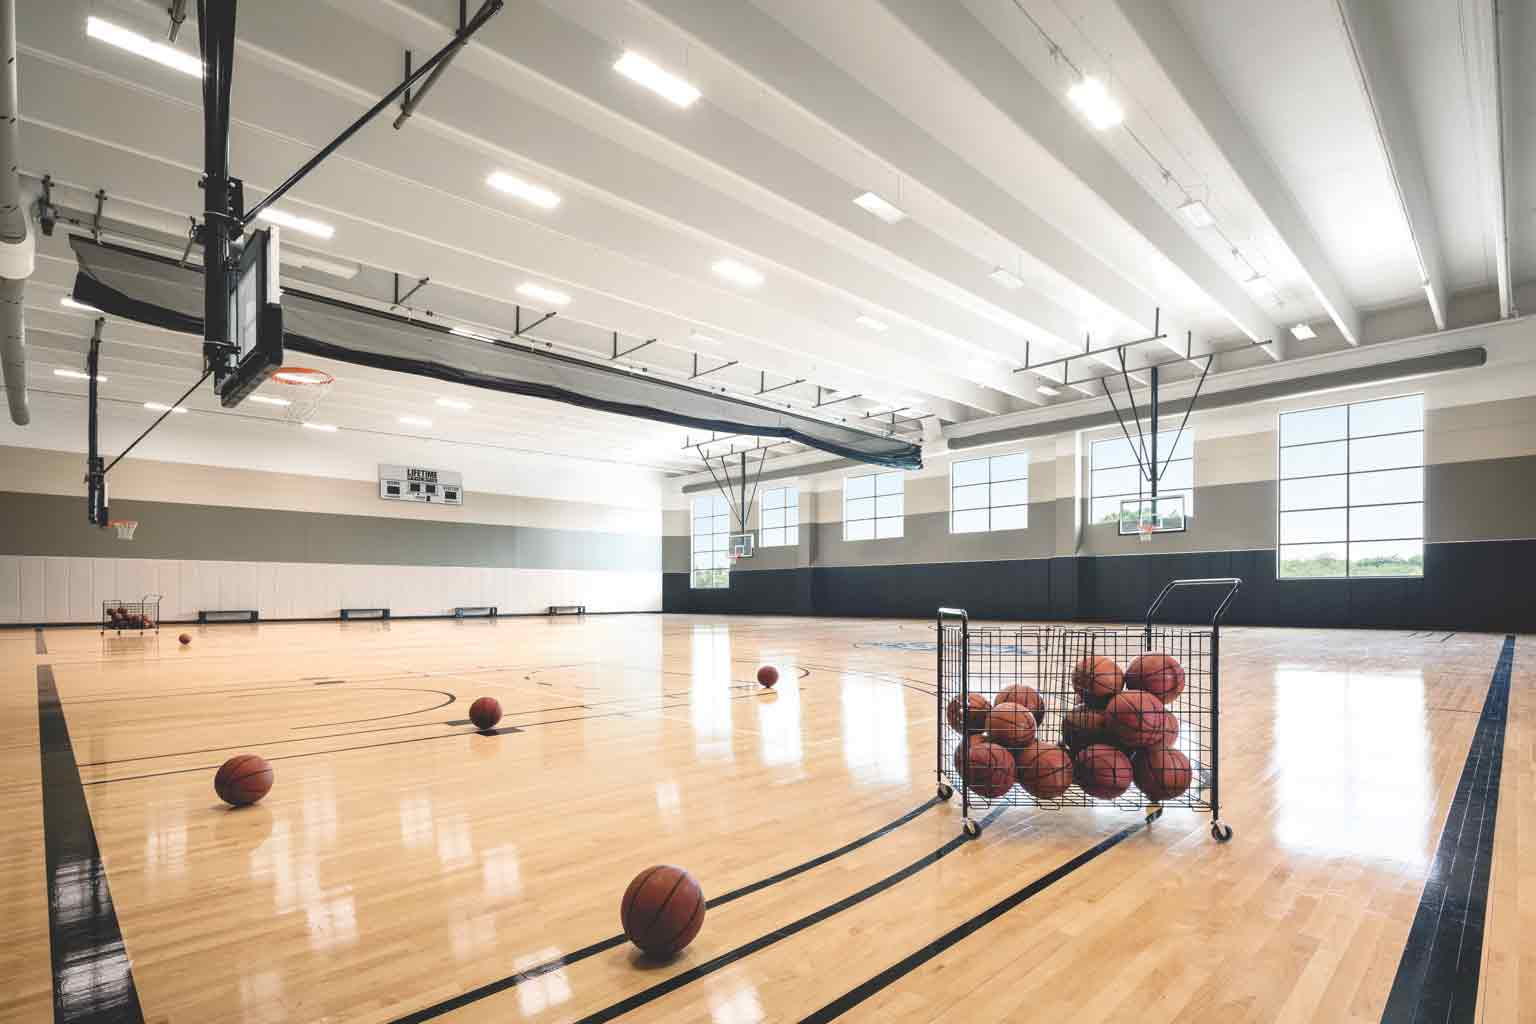 Life Time's spacious gym, featuring multiple hoops and basketballs